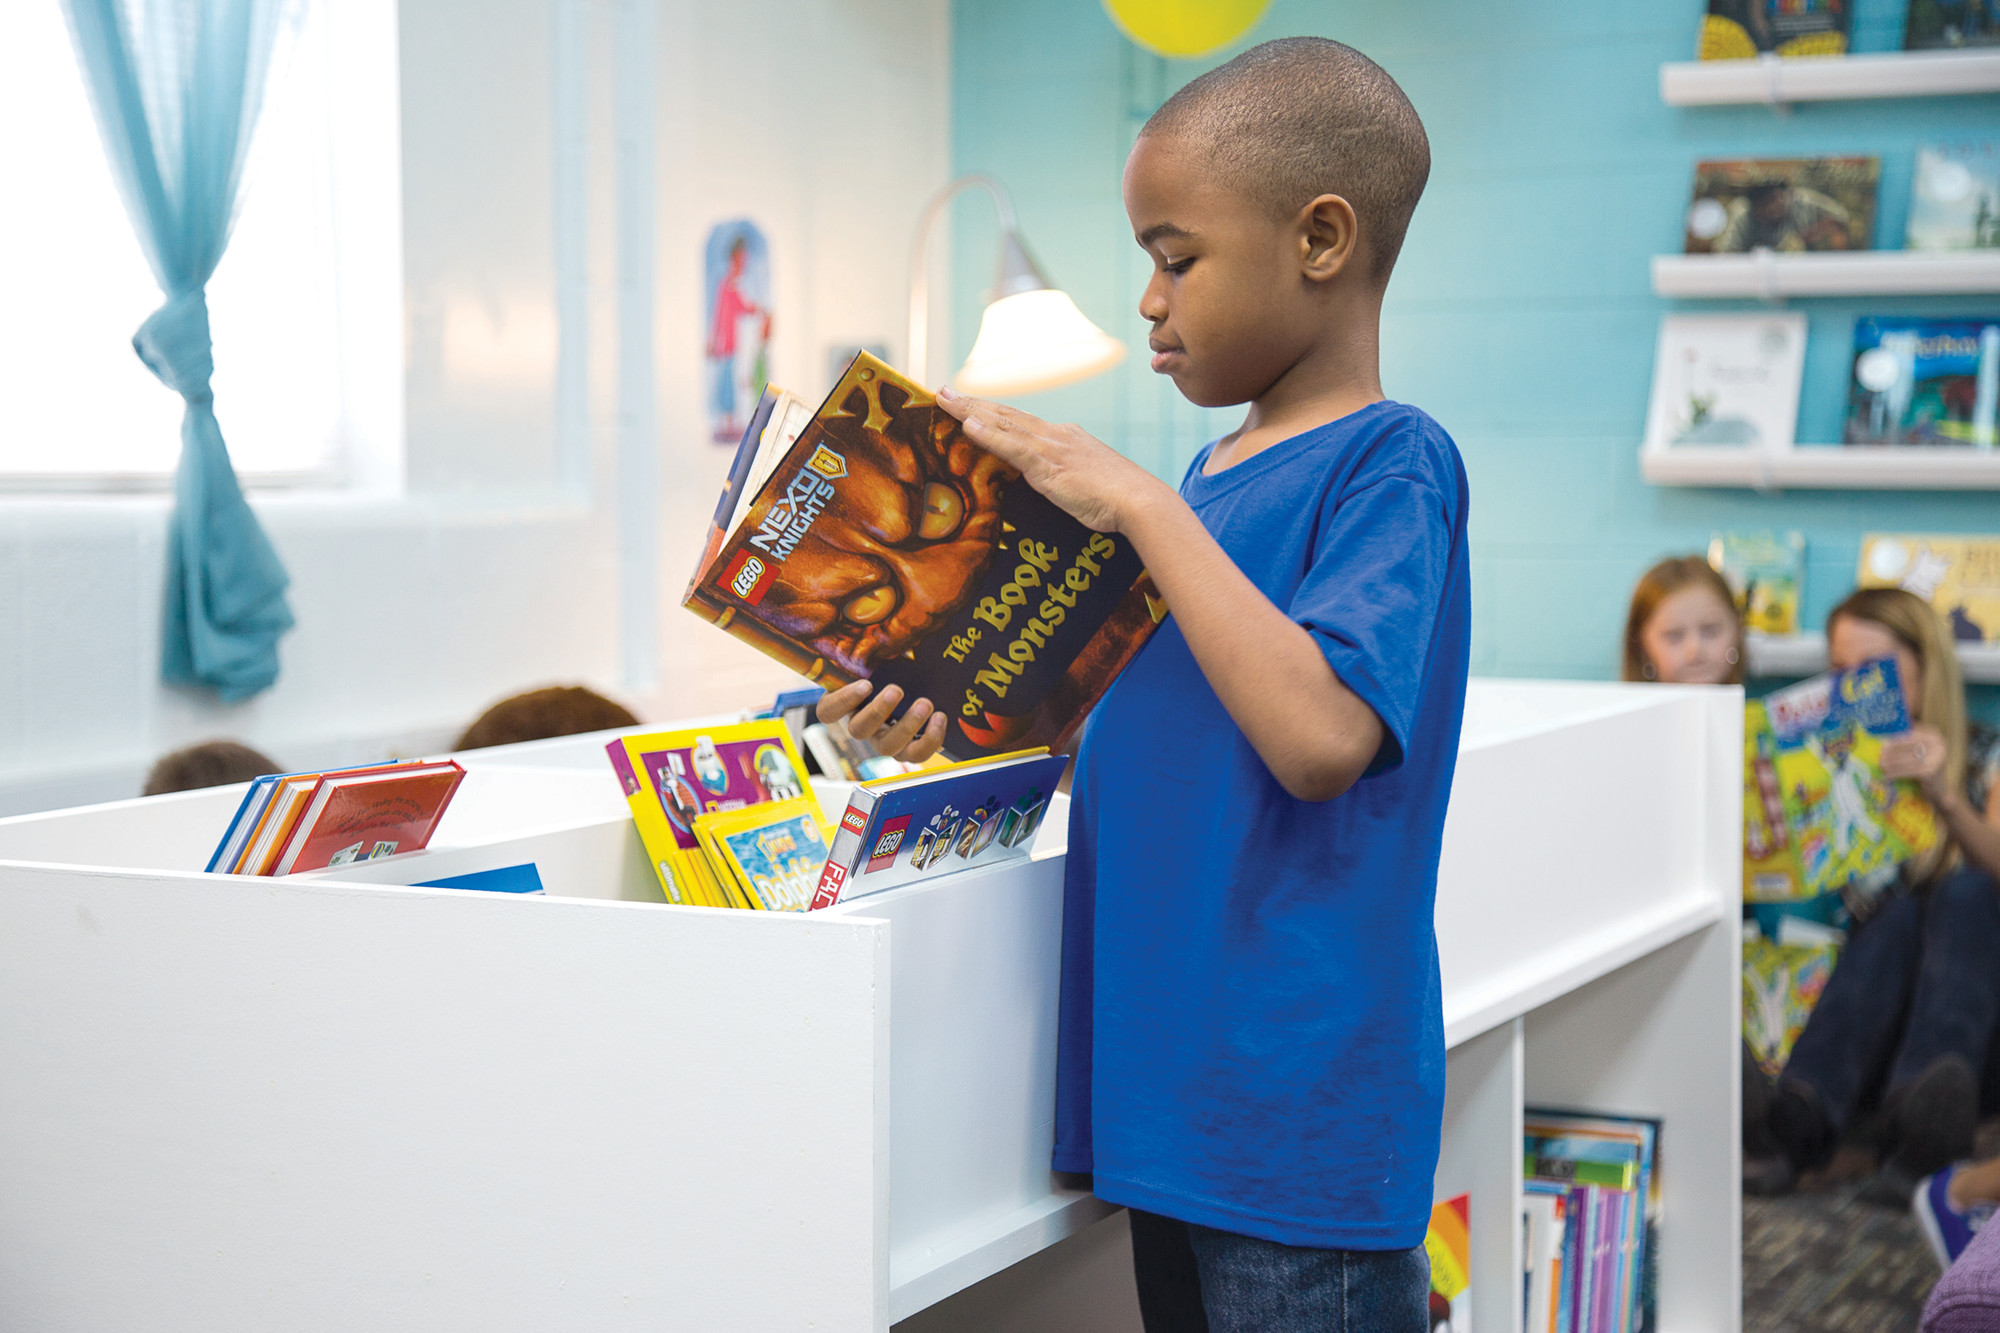 Books in the room are not organized in any special way, and the mission is for elementary school students to develop a joy for reading.